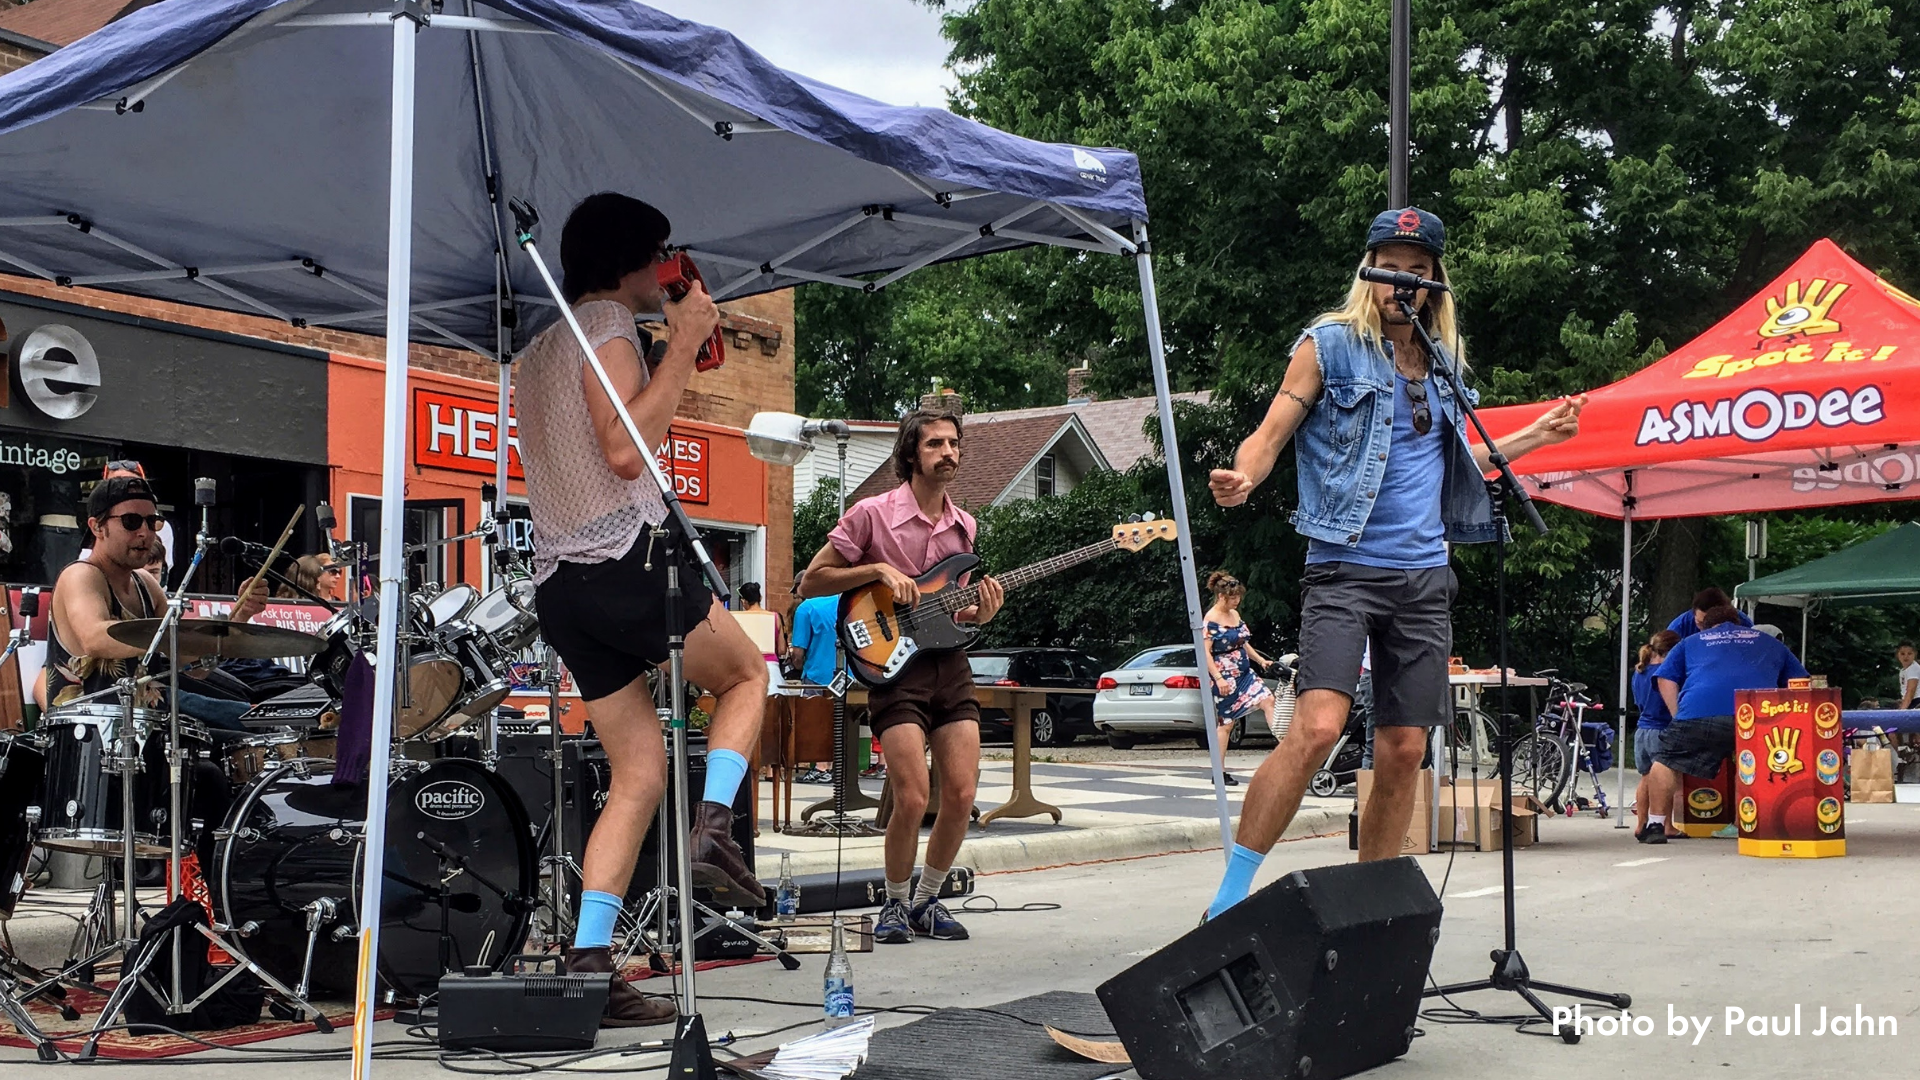 A band playing on the street at Open Streets Minnehaha